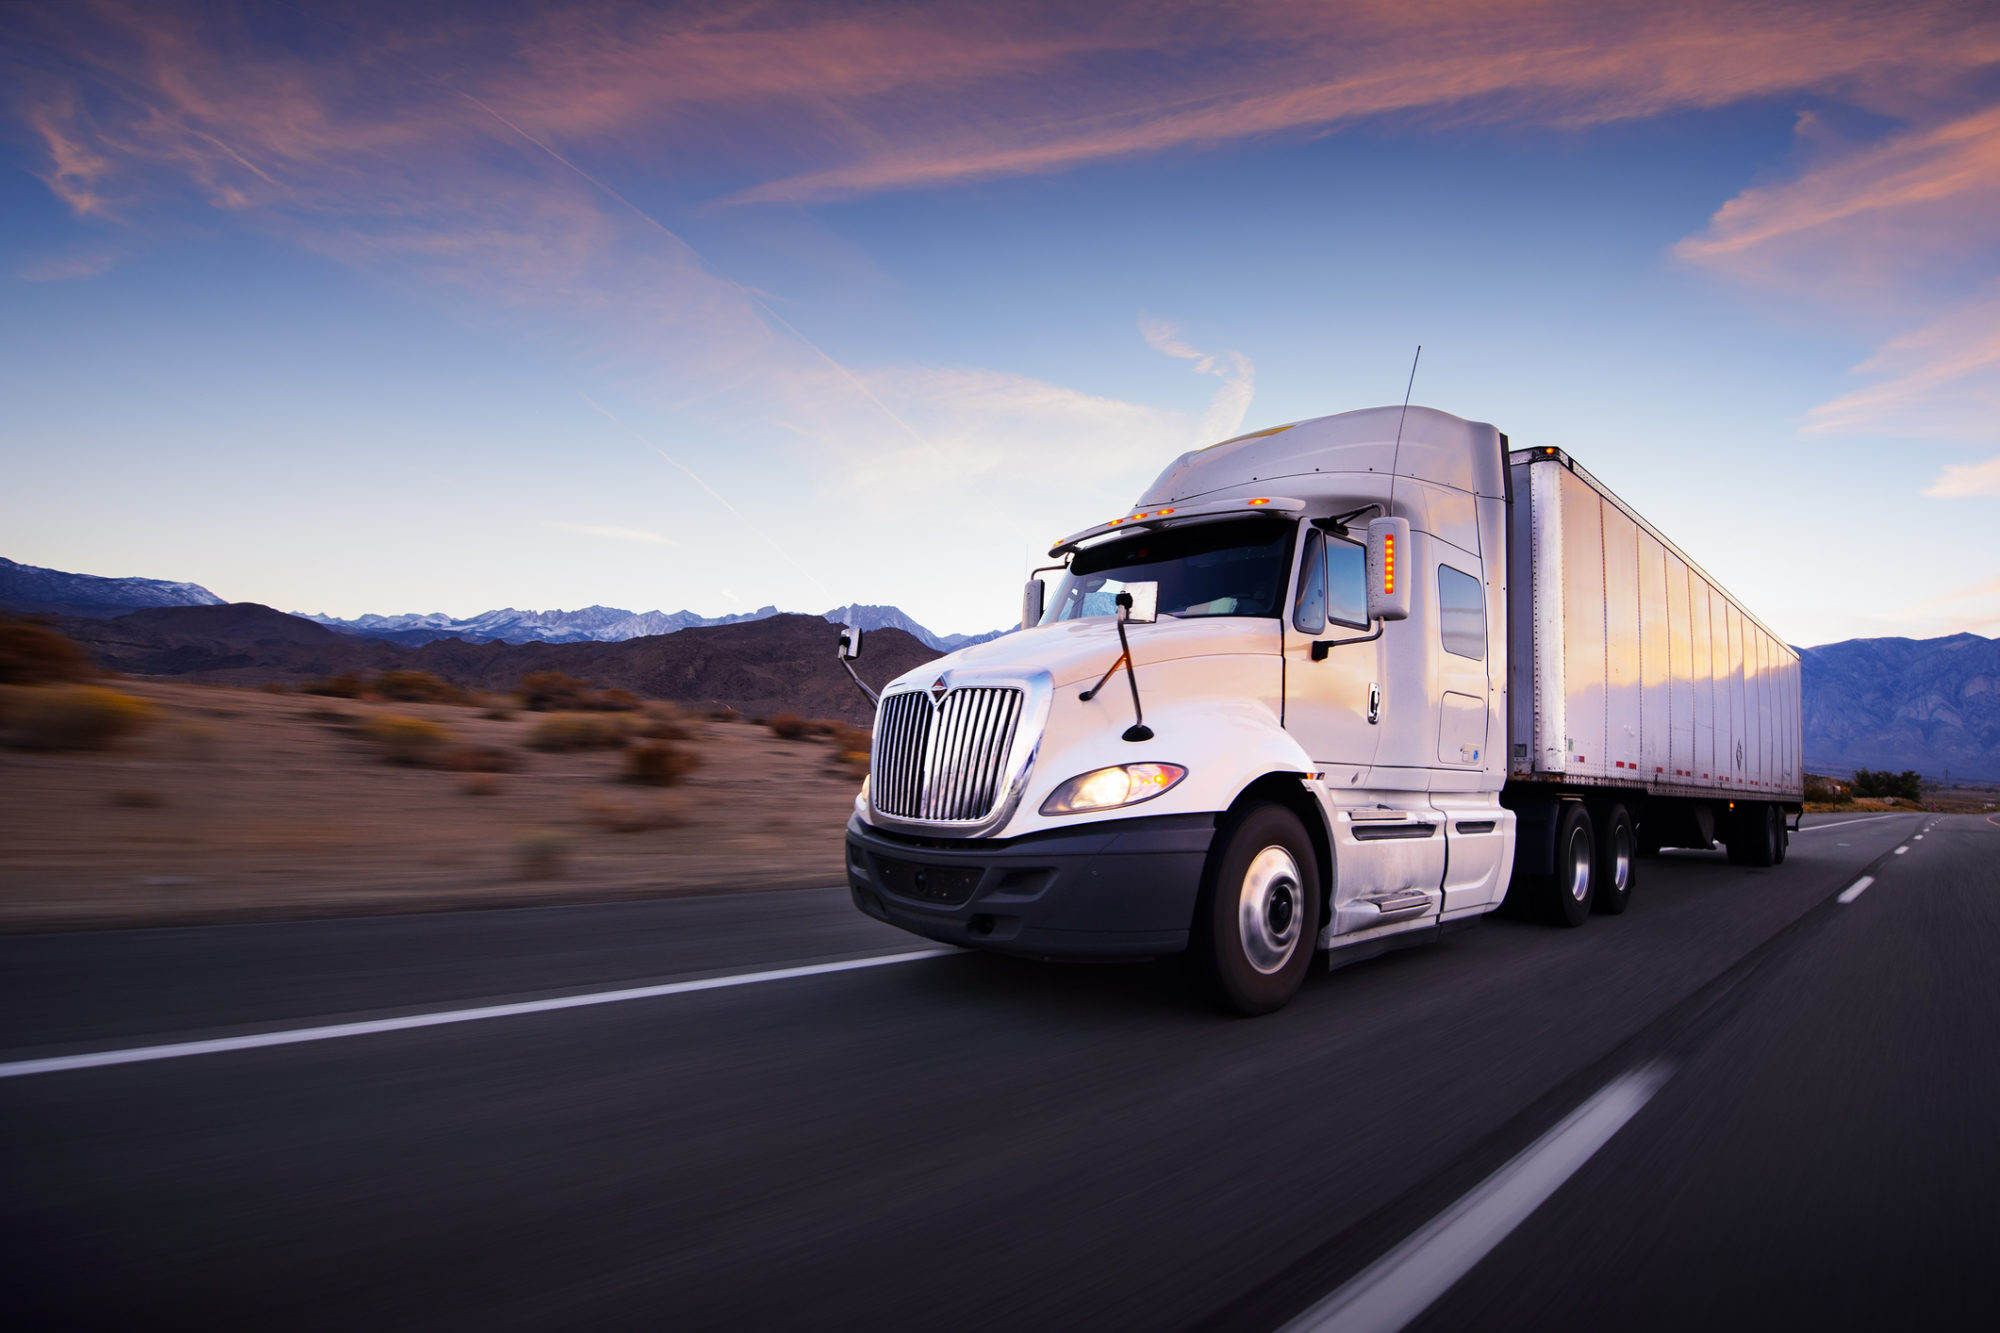 Truck and highway at sunset who may need a commercial truck accident attorney